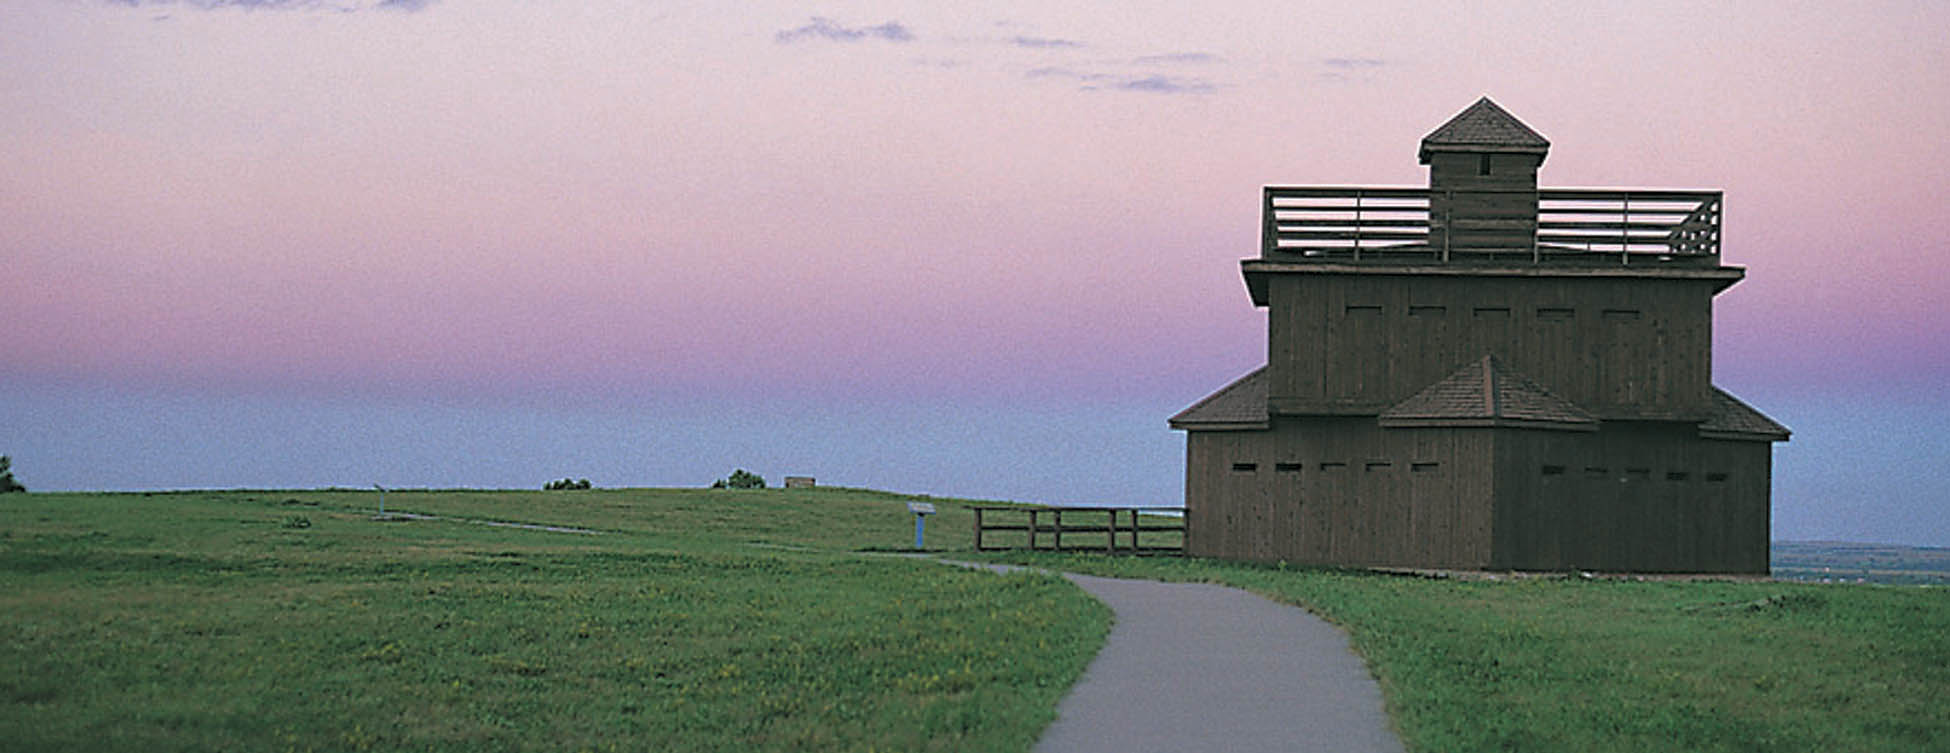 <strong>Figure 85. Reconstructed blockhouses at Fort Abraham Lincoln</strong> south of Mandan, North Dakota. <em>(ND Tourism, WE0038)</em>